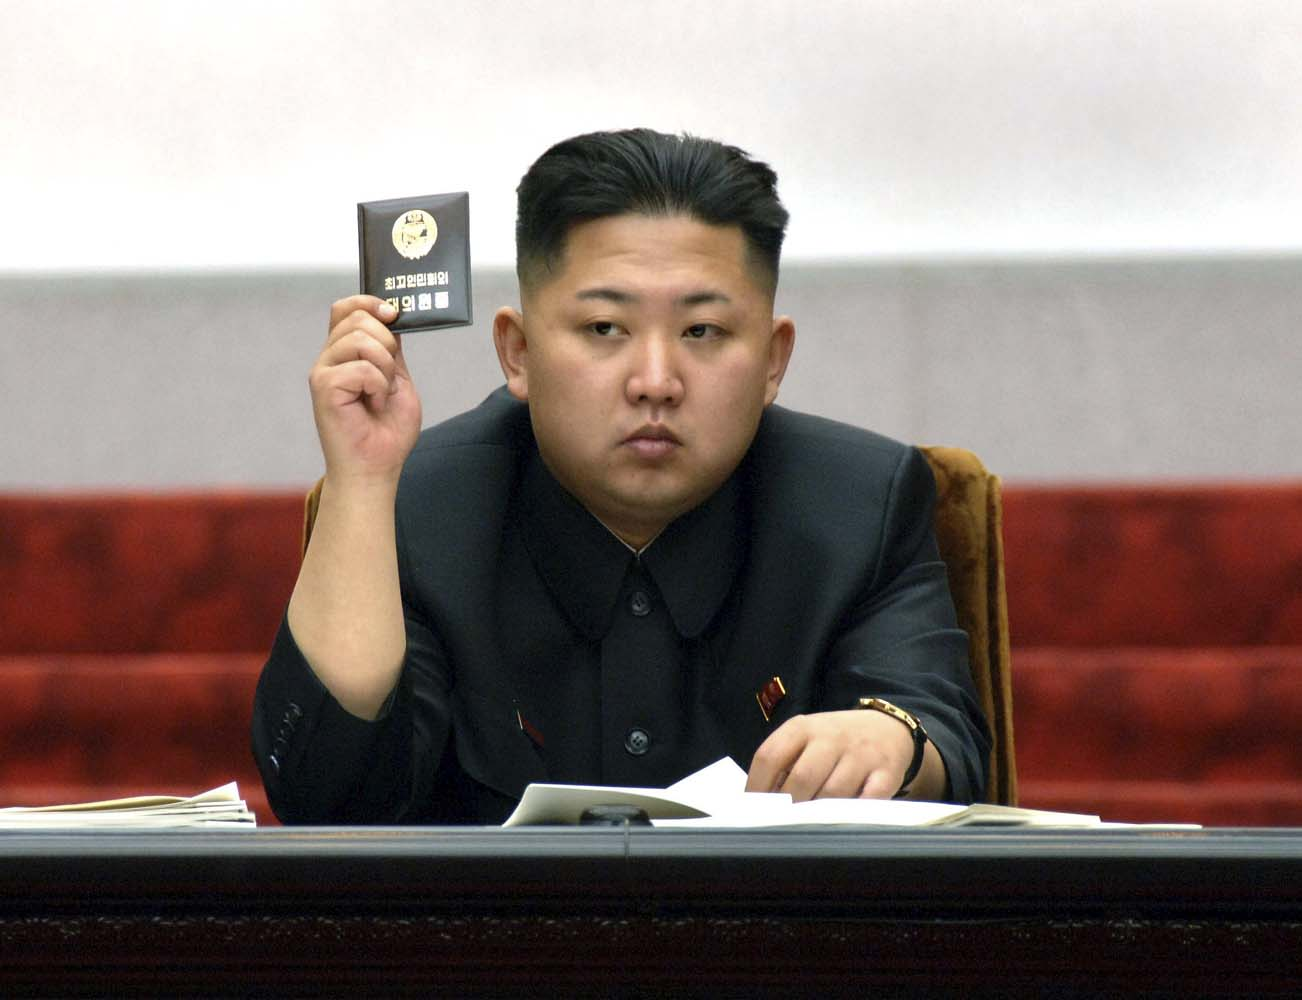 North Korean leader Kim Jong-Un holds up his ballot during the fifth session of the 12th Supreme People